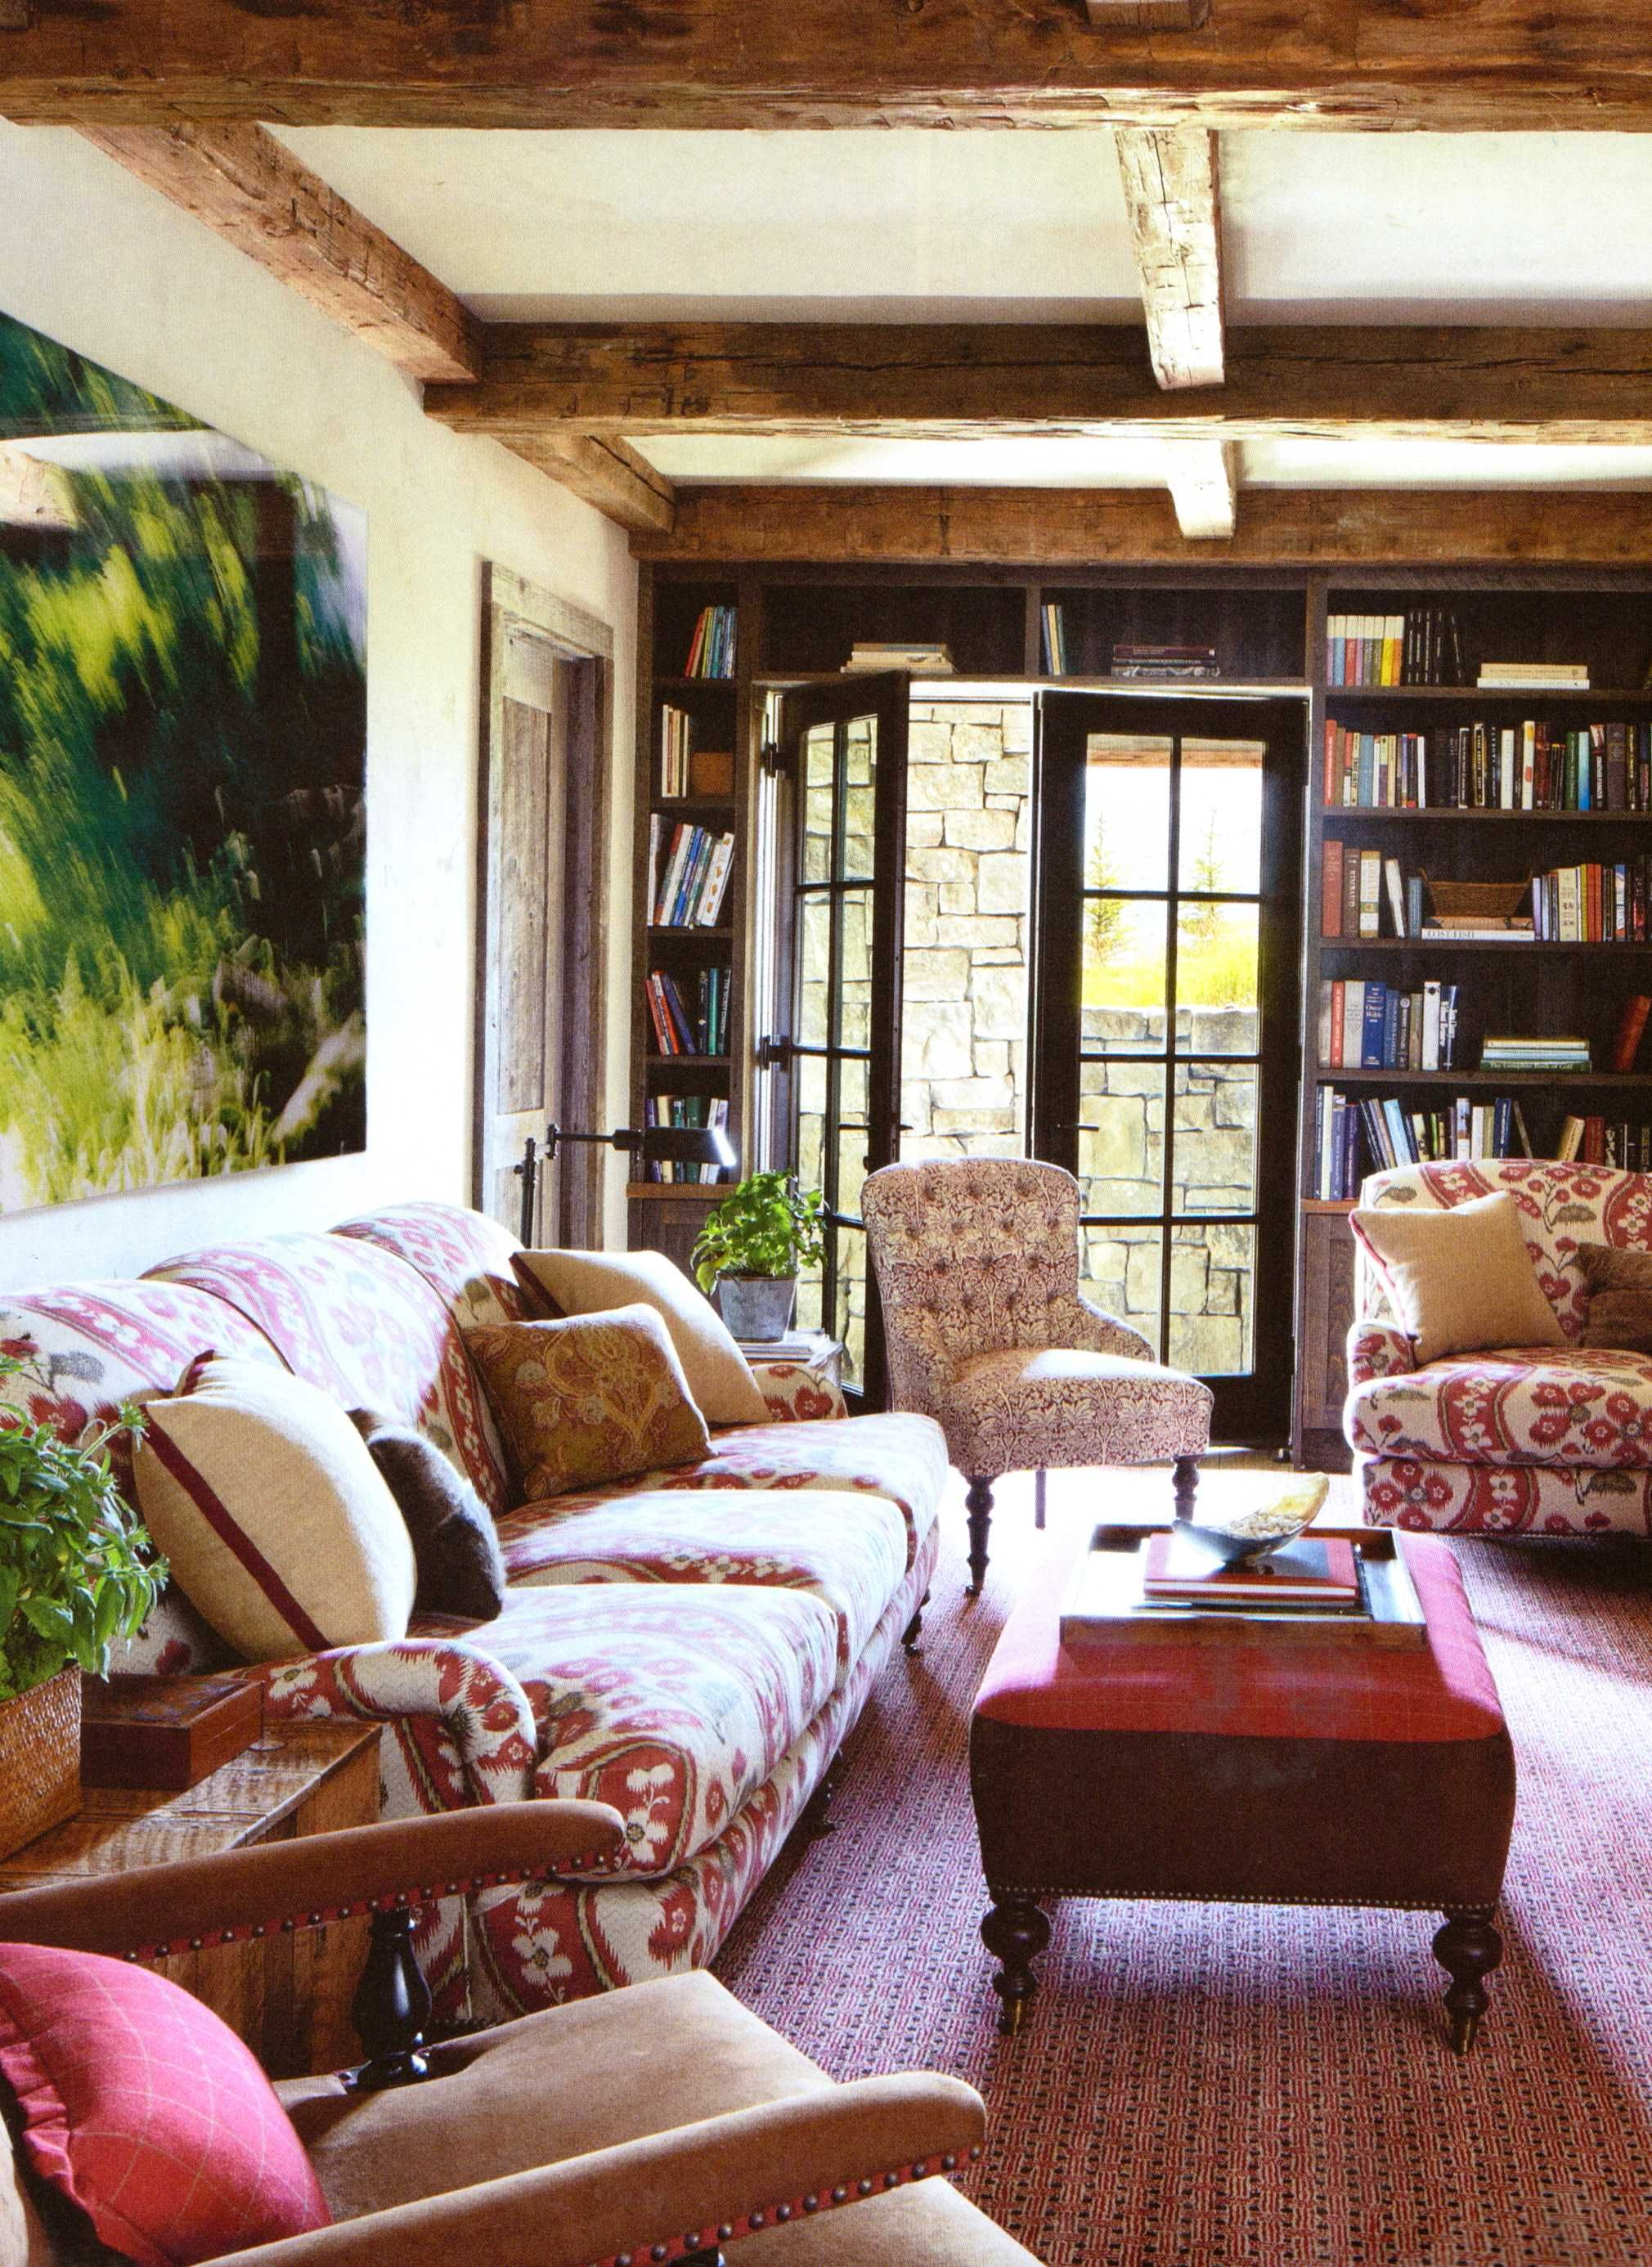 Interior Design Living Rooms Photos: Pin By Cheryl Schwandt On Interior Design (With Images